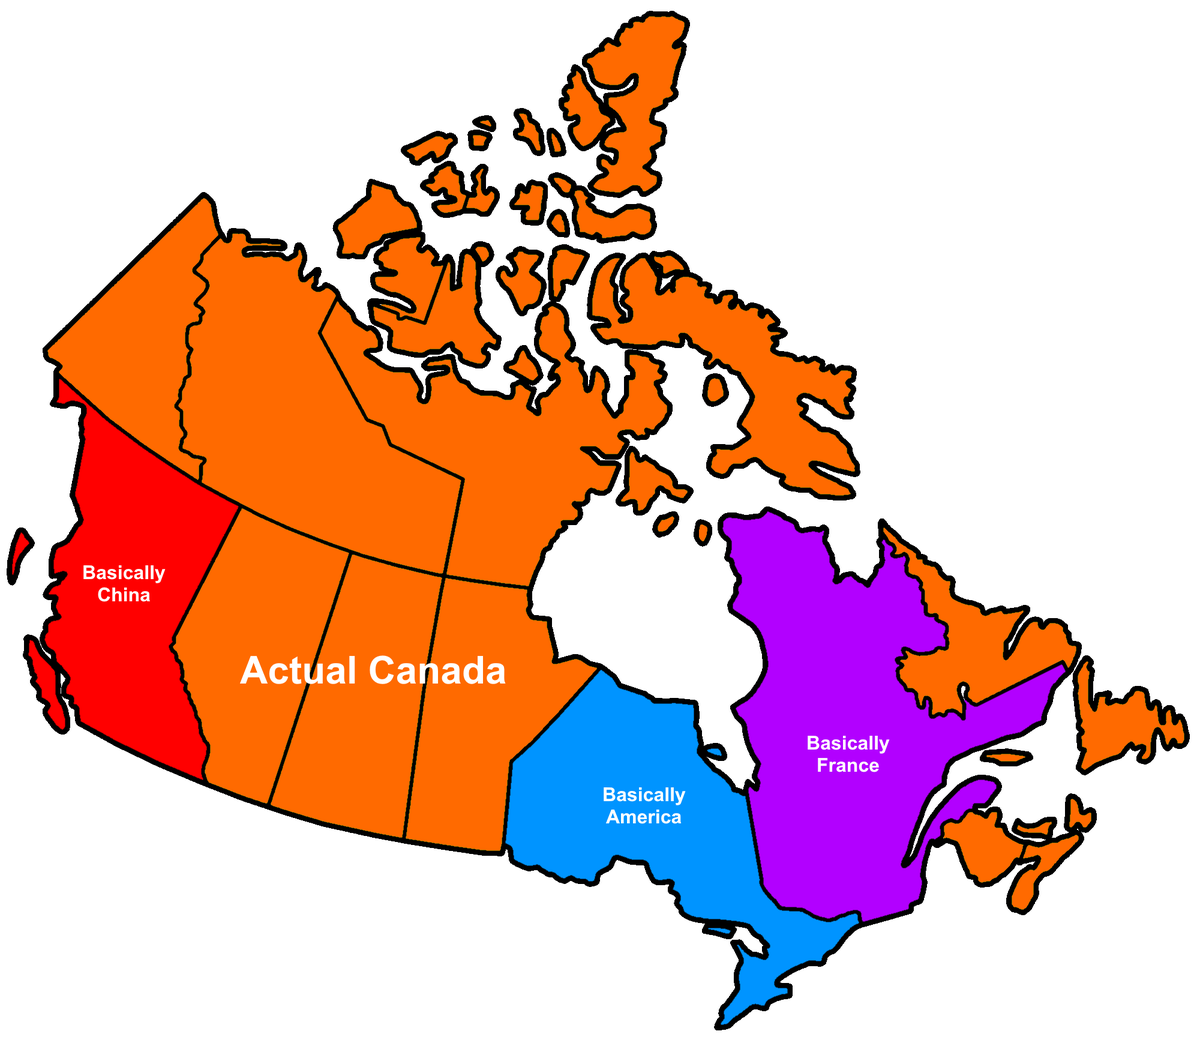 Pics Of Canada Map.Terrible Maps On Twitter Map Of Canada By How Canadian It